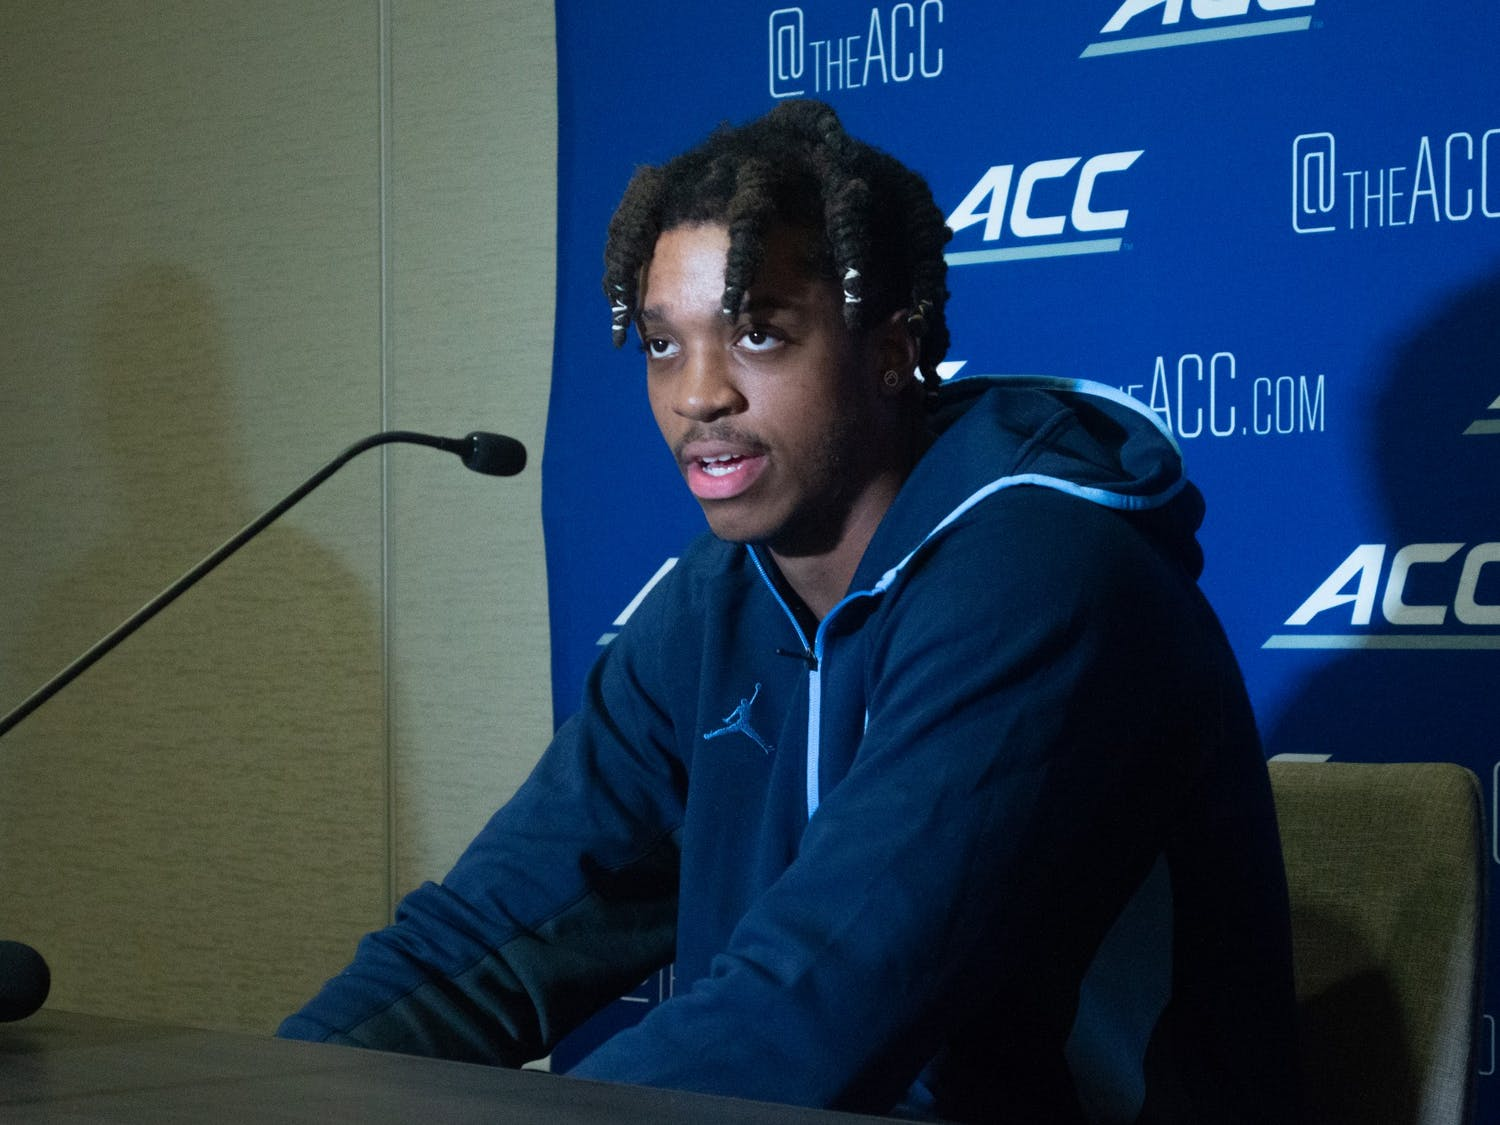 UNC junior forward/center Armando Bacot speaks to the media at the 2021 ACC Men's Basketball Tipoff in Charlotte, NC on Oct. 12.